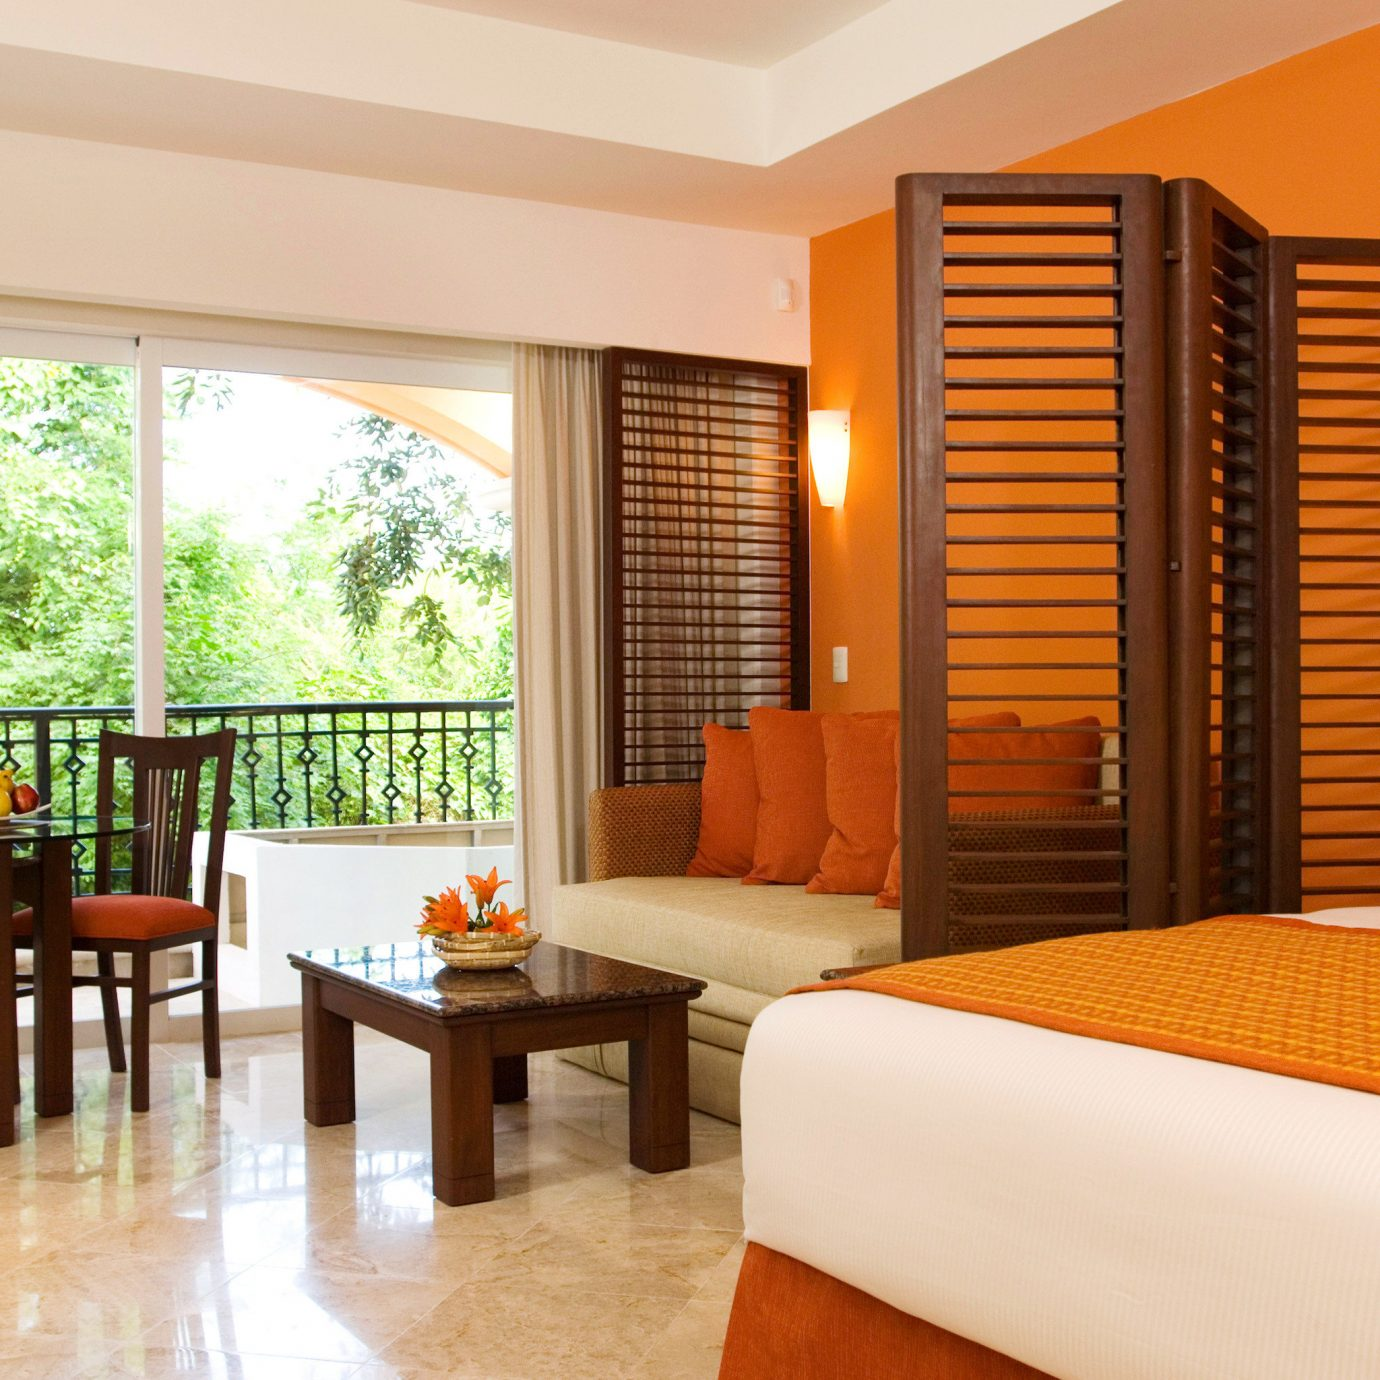 Balcony Bedroom Hip Luxury Modern Scenic views Suite property condominium Resort Villa living room